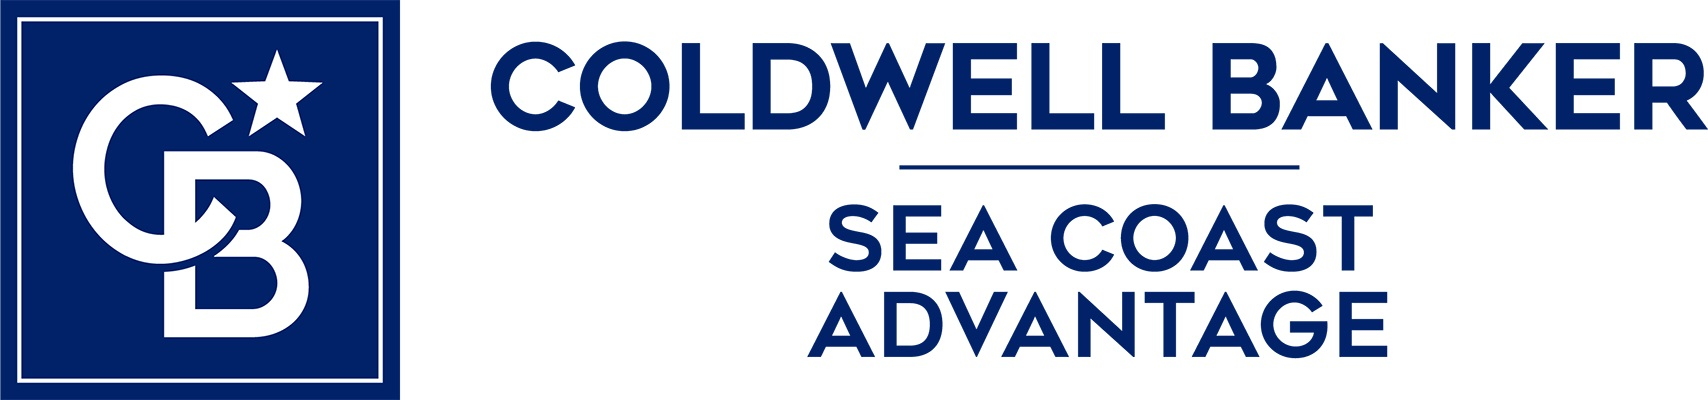 Paul Trogdon - Coldwell Banker Sea Coast Advantage Realty Logo